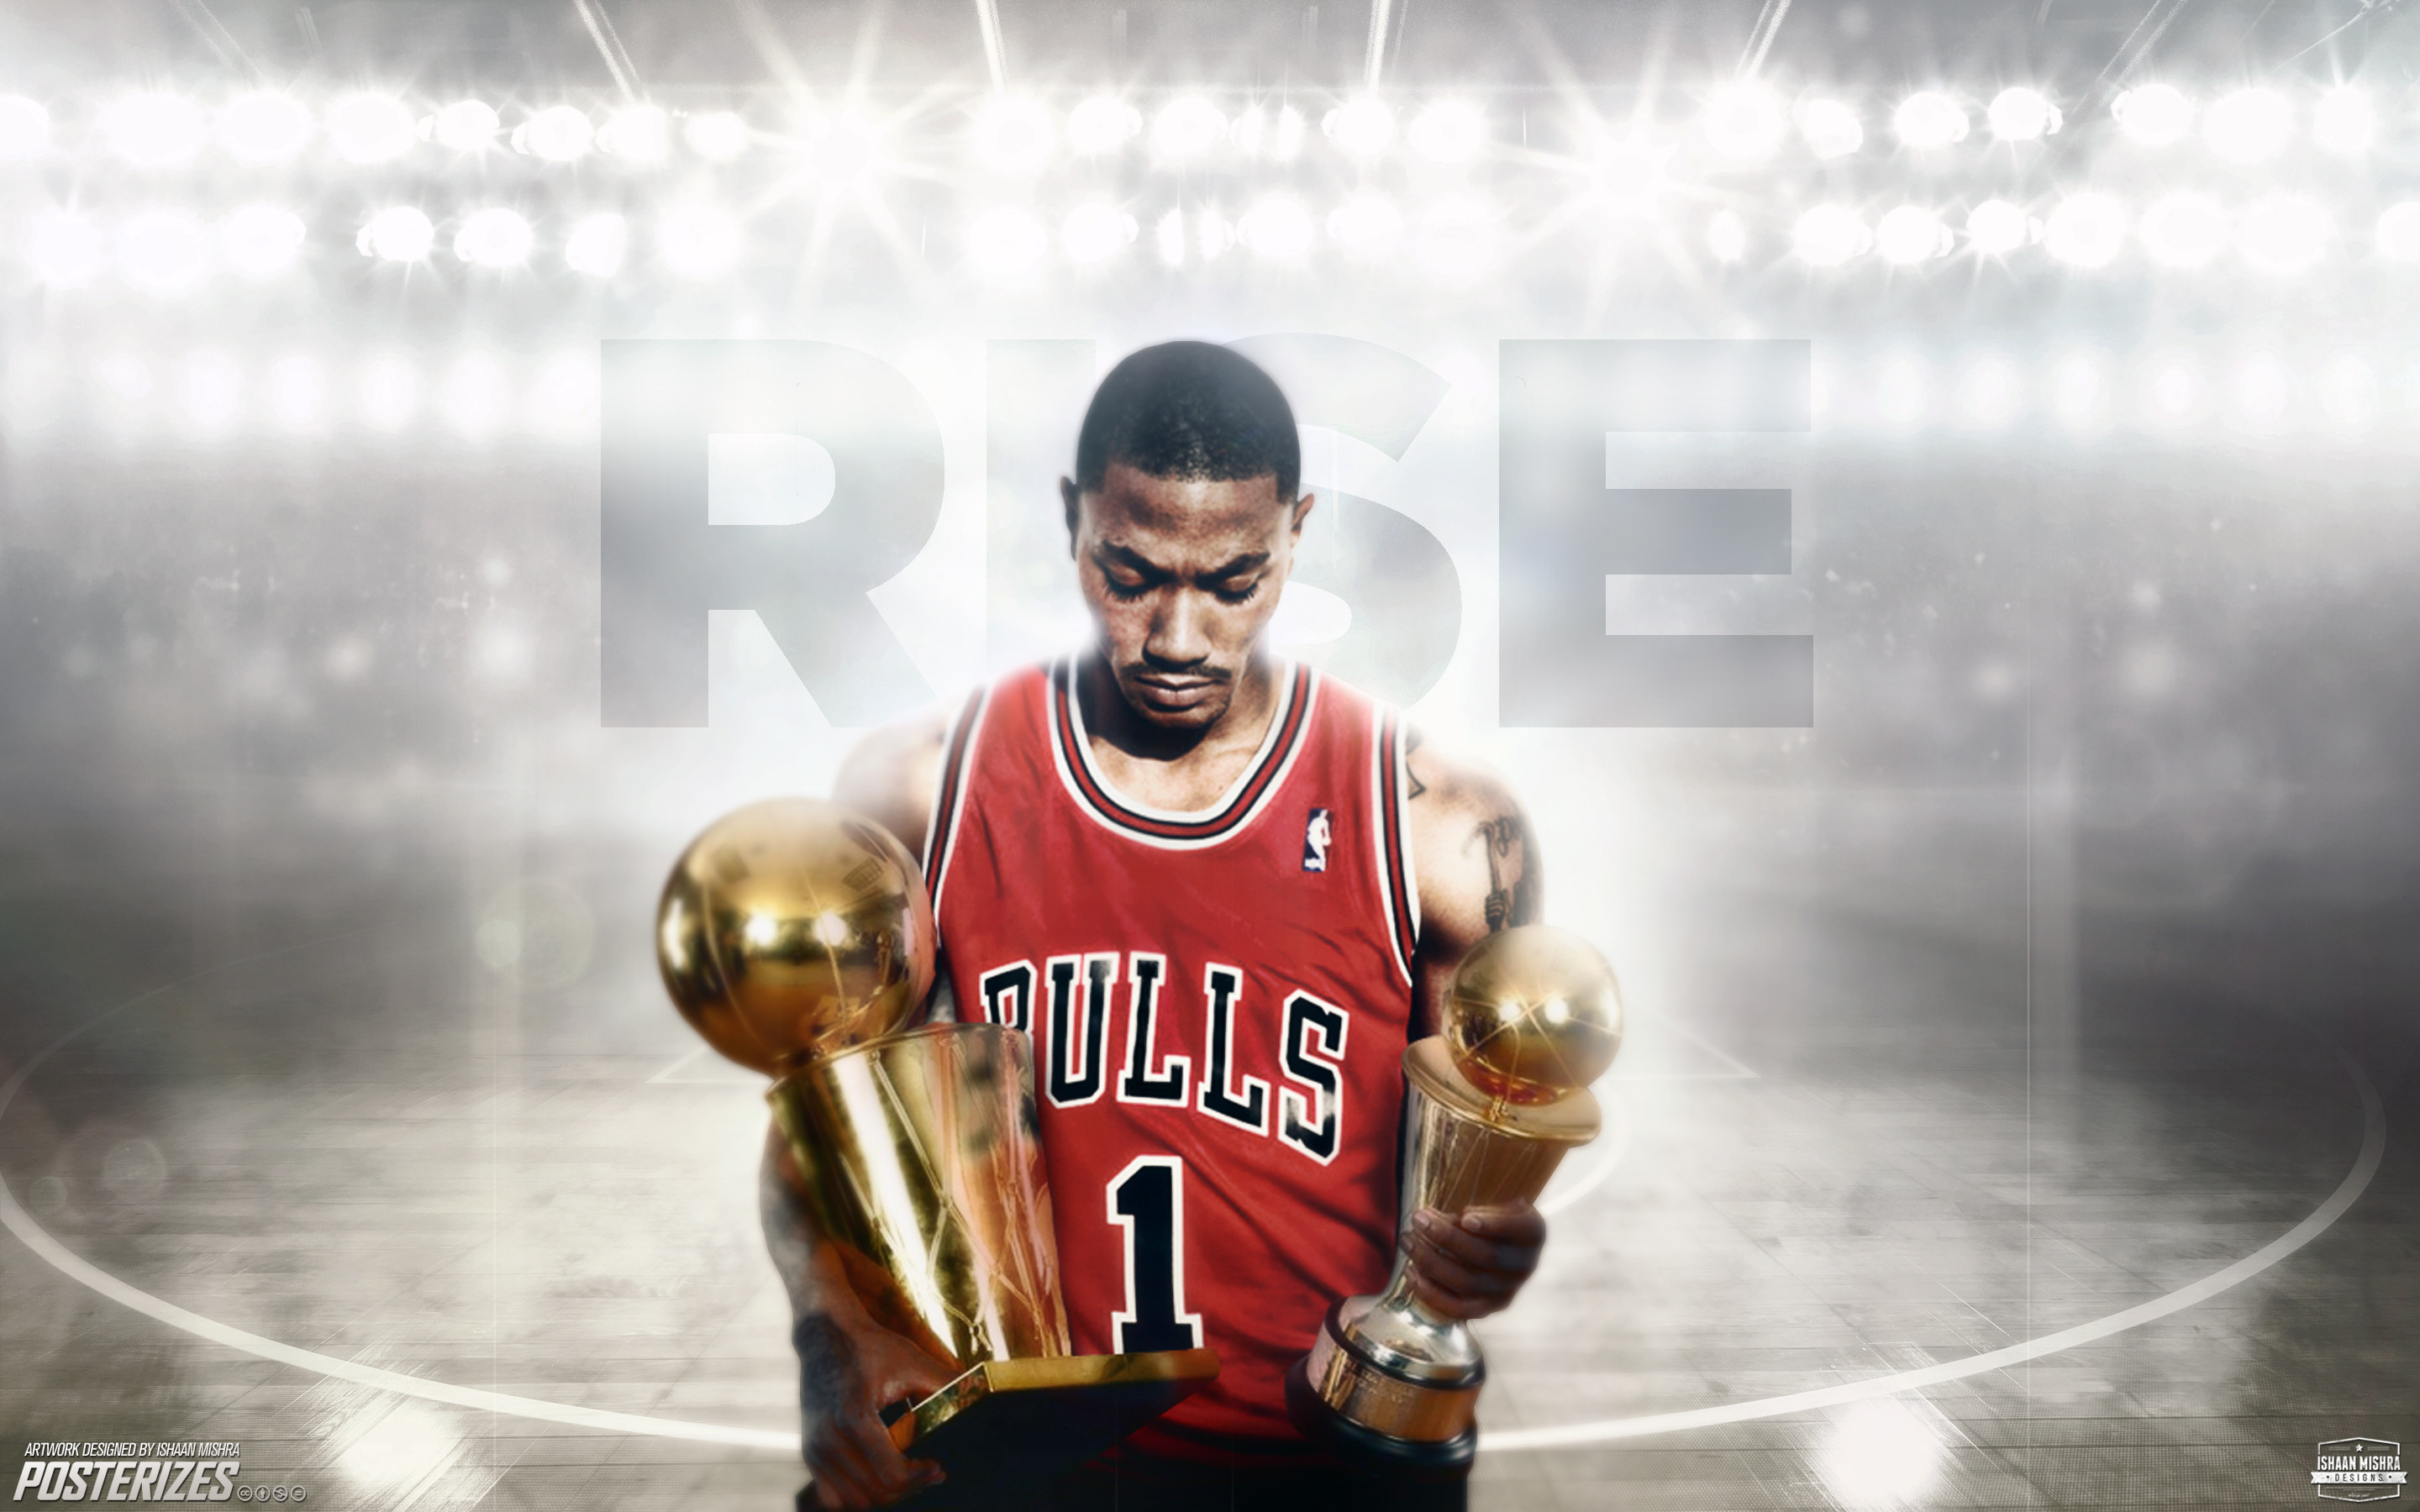 70a7a3dad65a 1920x1200 Derrick Rose 2011 MVP Award Widescreen Wallpaper · Download ·  2880x1800 ... Derrick Rose Wallpaper - Best HD Wallpaper .